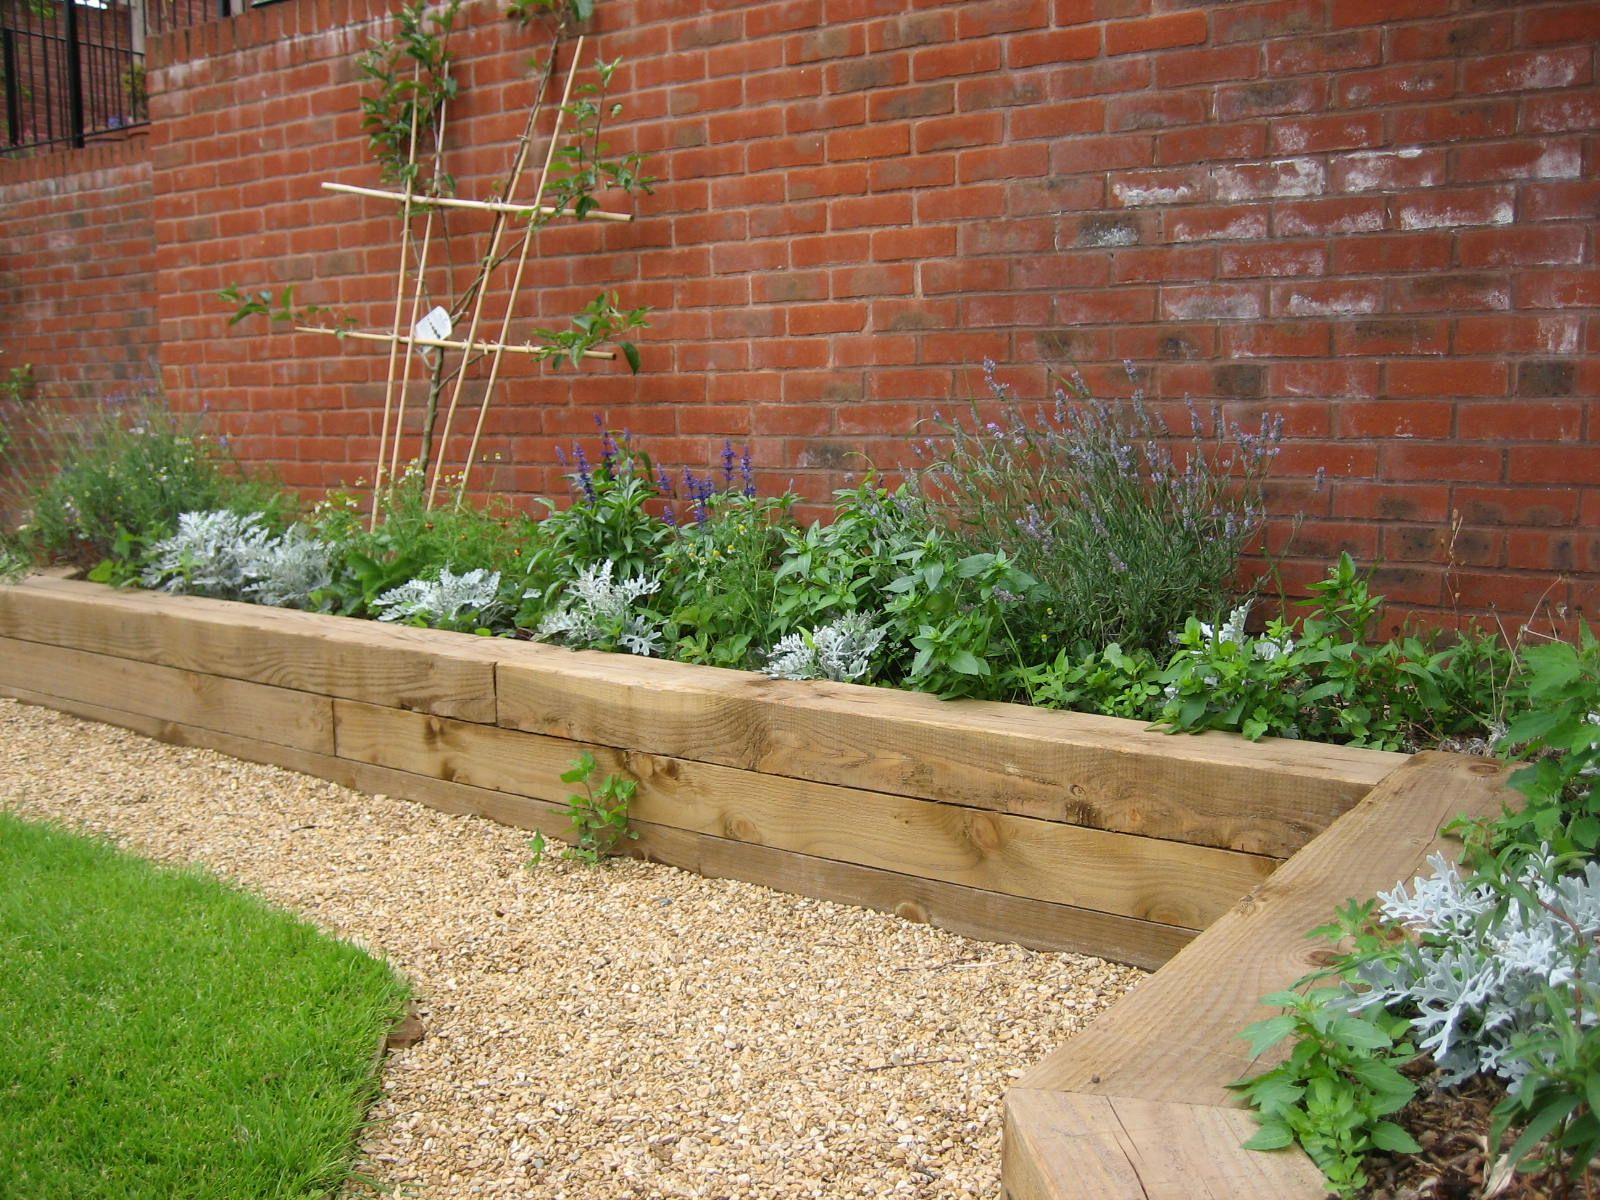 Raised bed gardening ideas tips on how to create a low maintenance